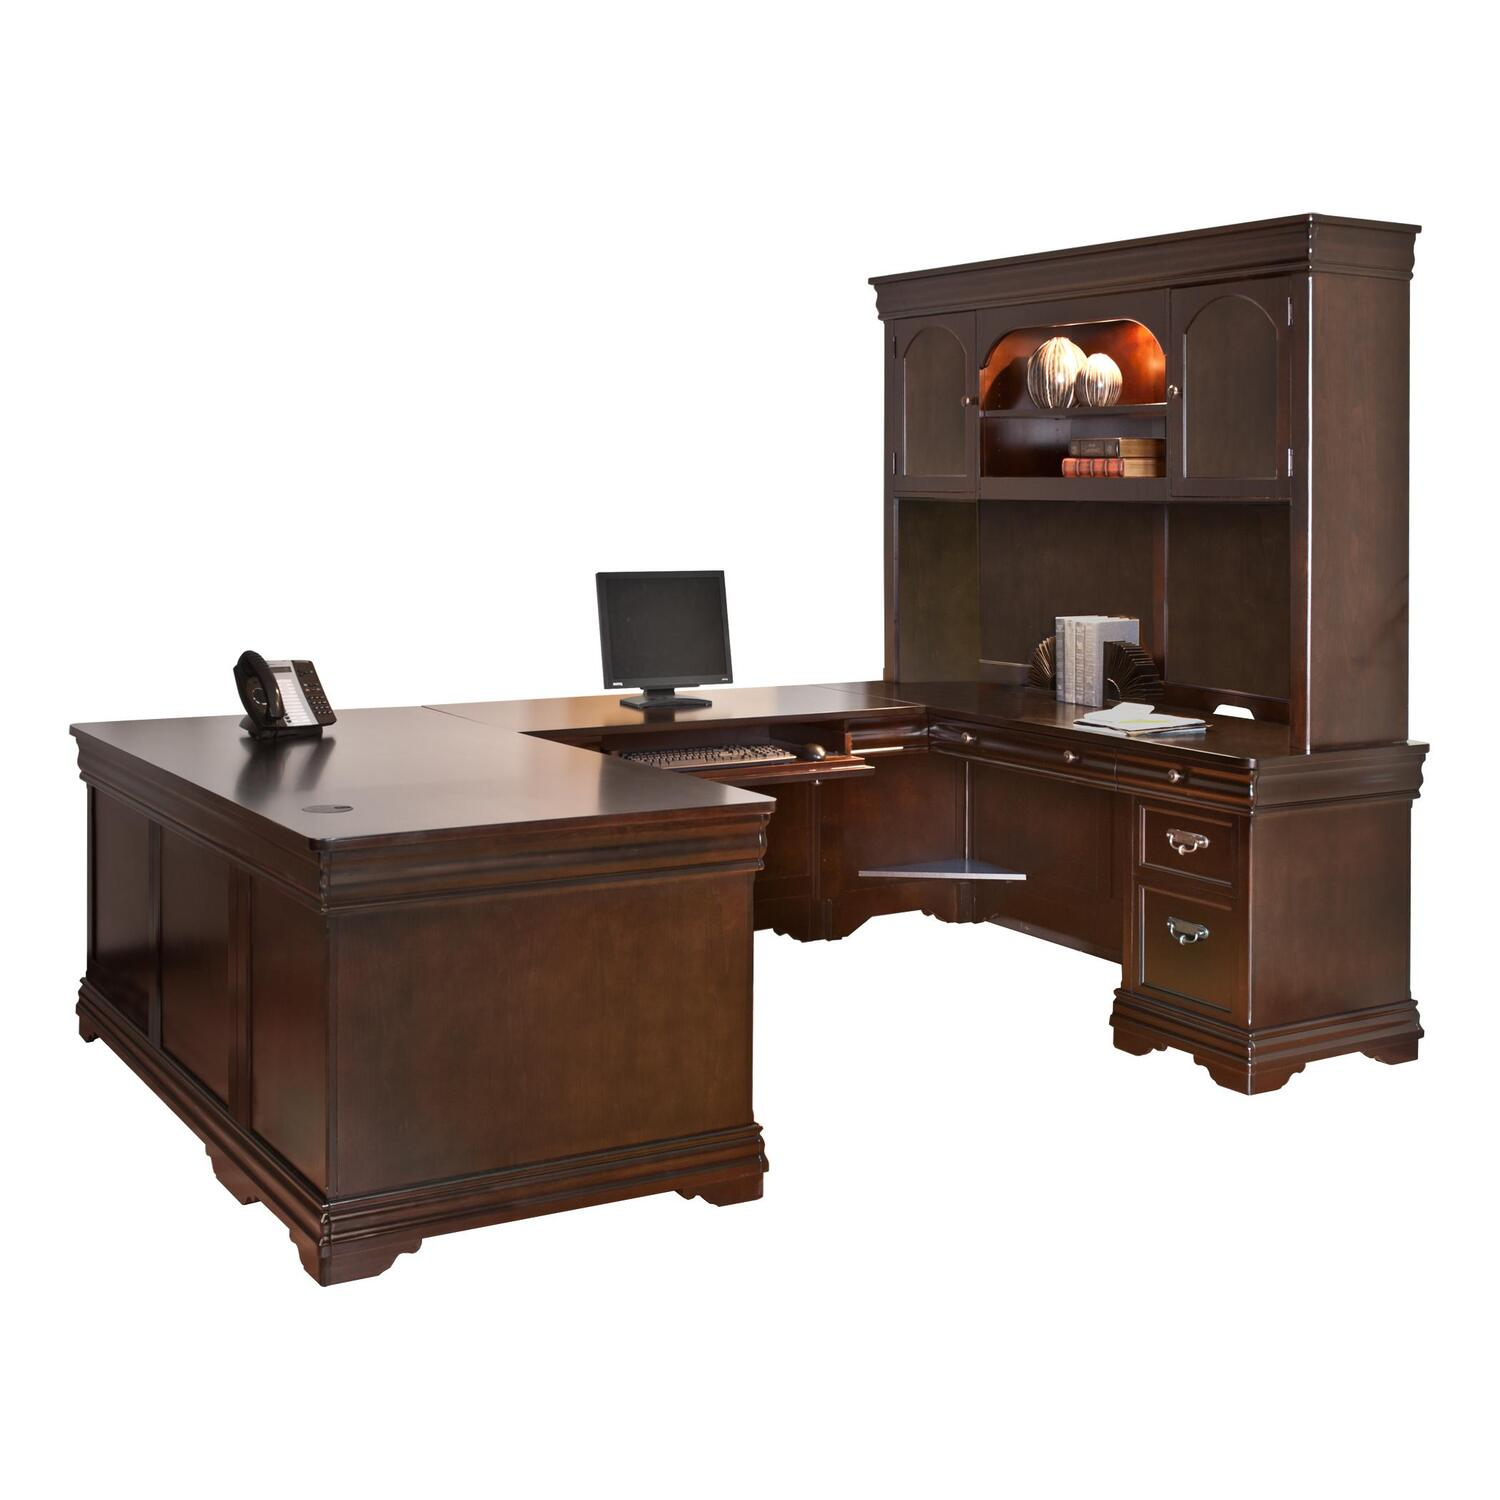 Martin Furniture Beaumont U Shaped Desk By OJ CommerceBT684R C SET $ . Full resolution‎  portrait, nominally Width 2100 Height 1615 pixels, portrait with #BA3F11.